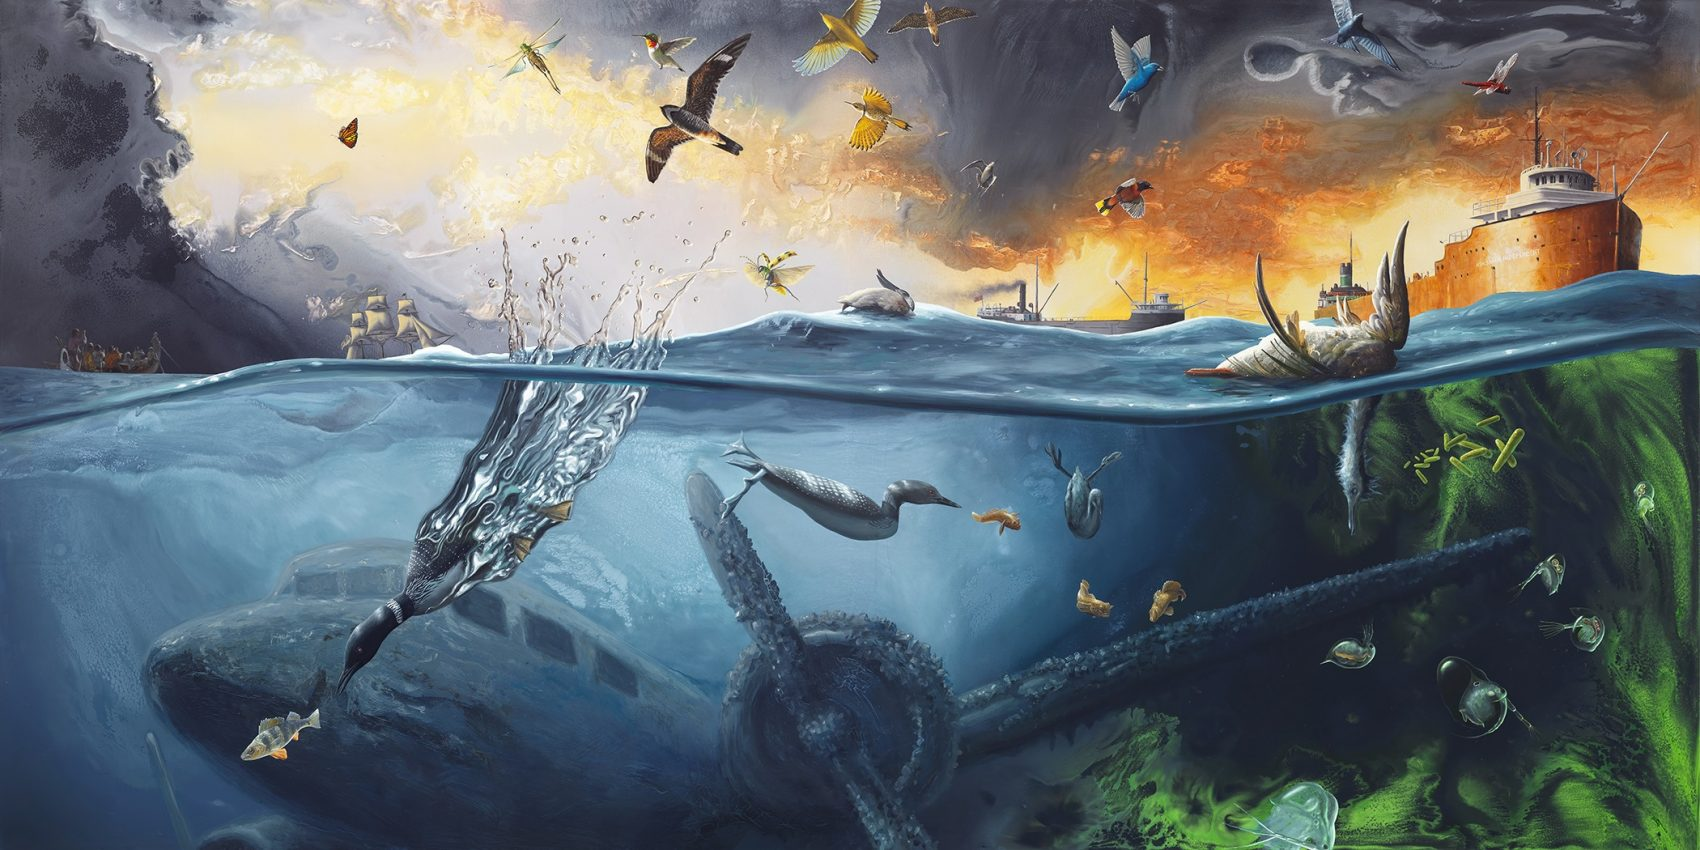 Painting S Fantastical Paintings Illustrate Great Lakes Ecology